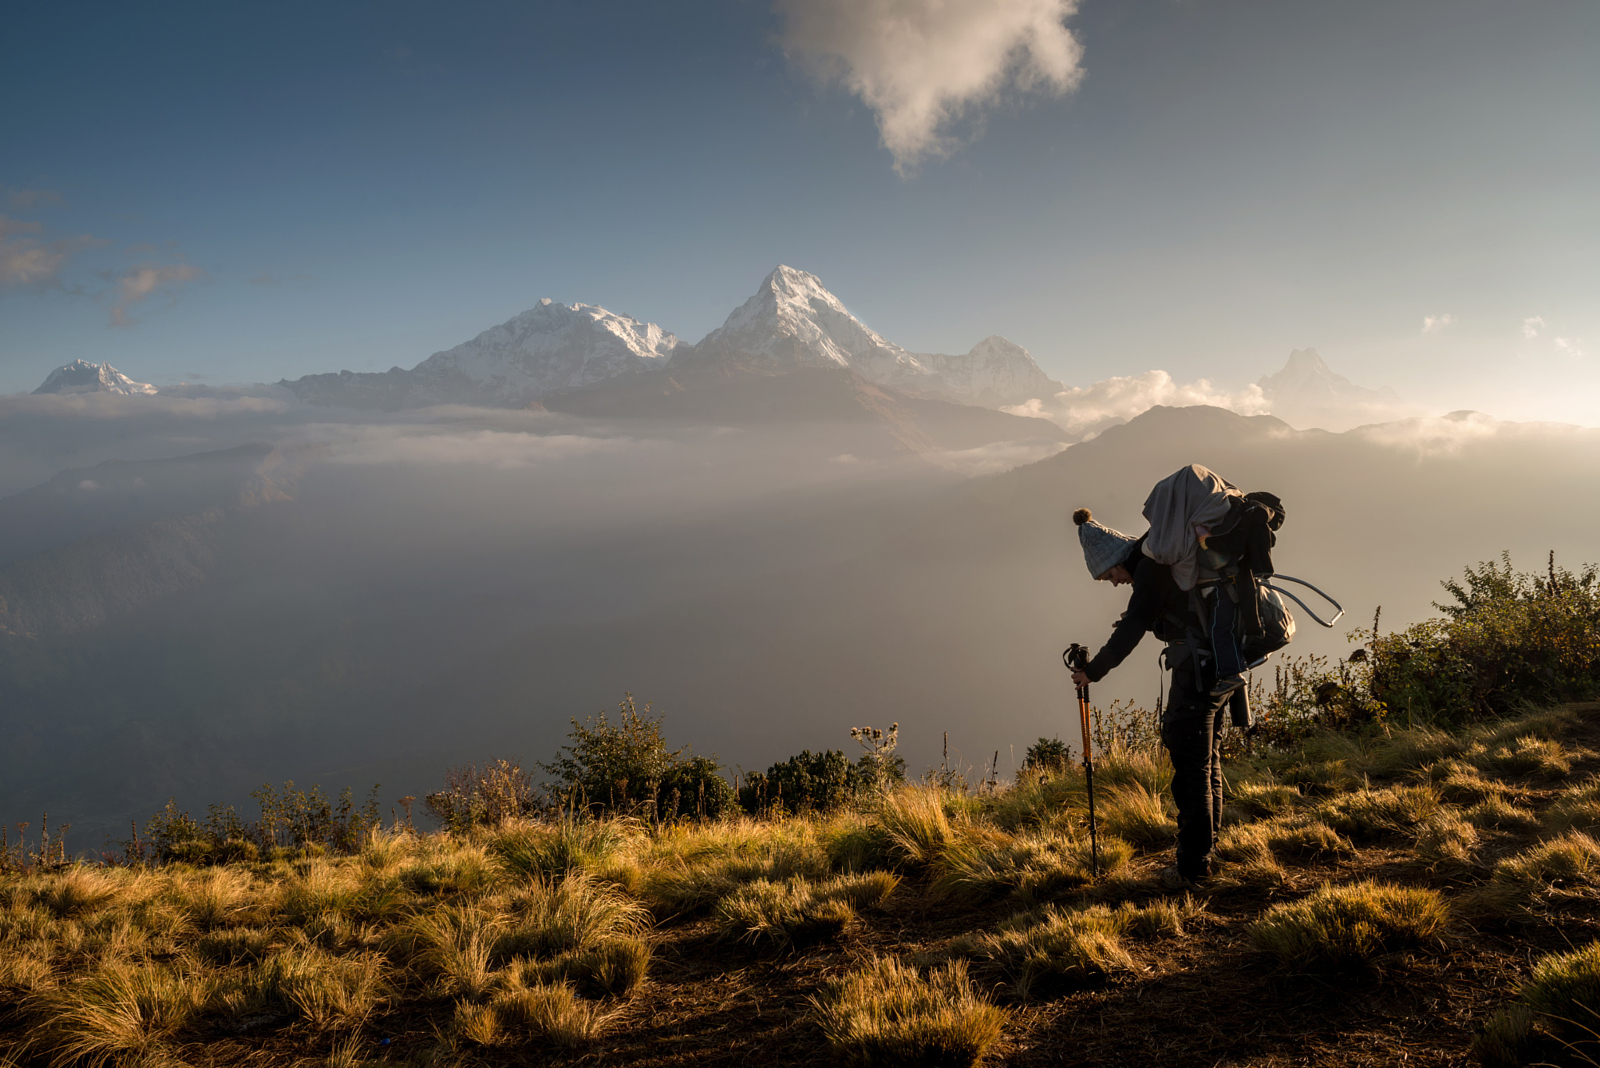 Resource Travel's Top 10 Travel Photos of the Week